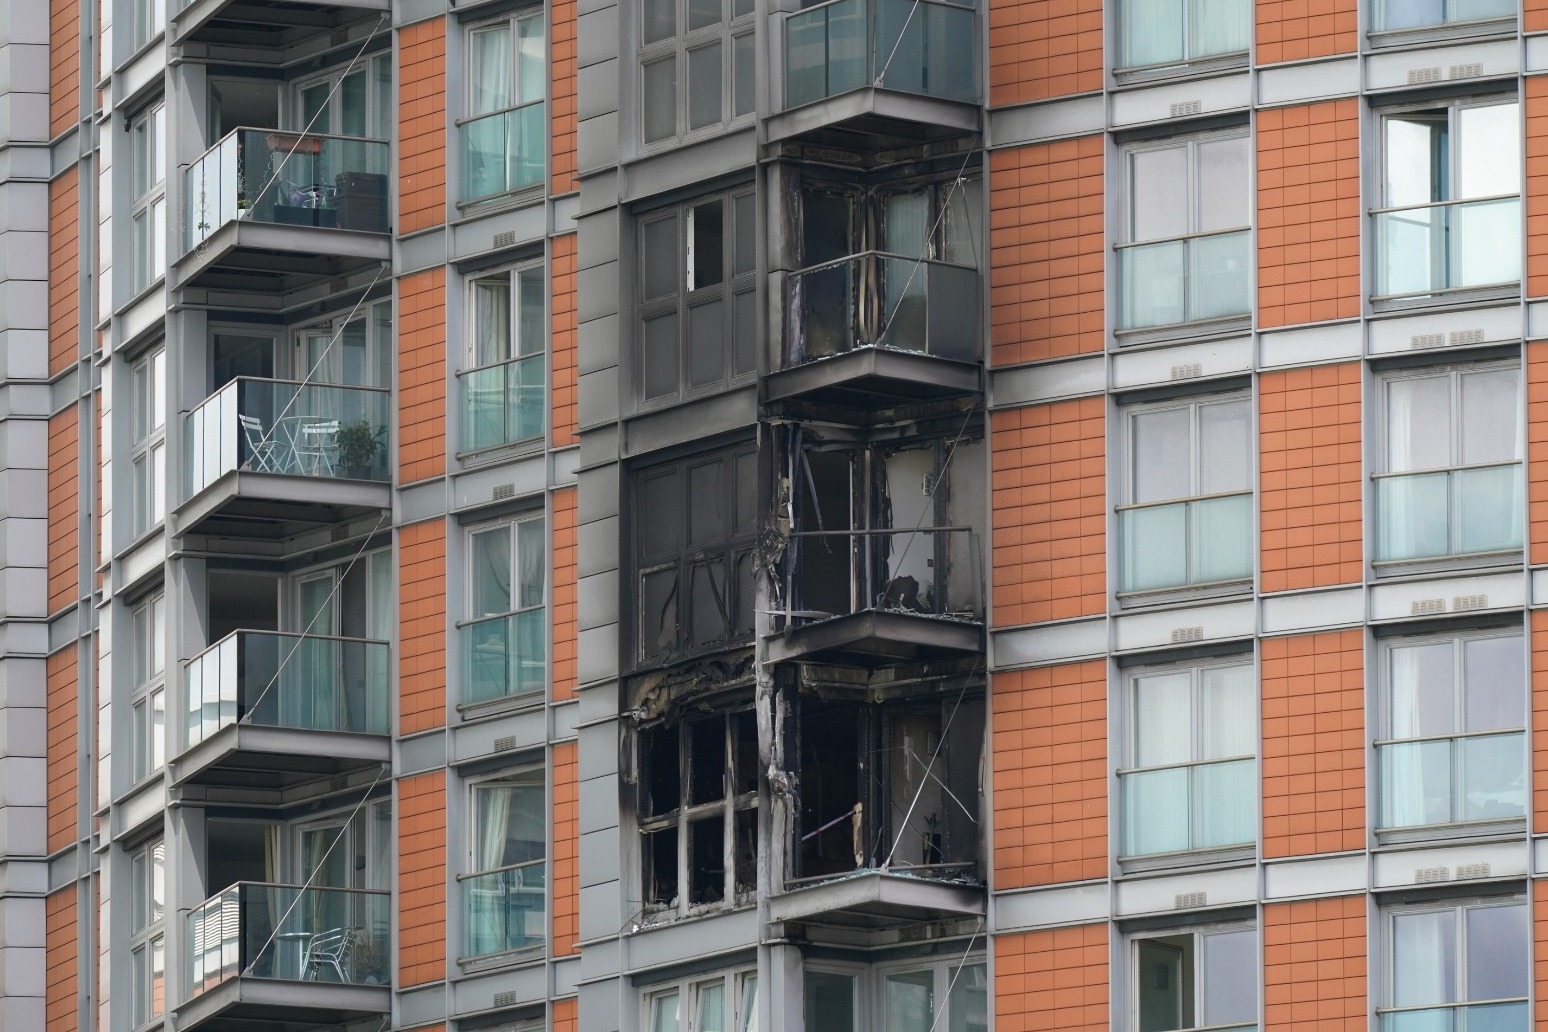 Smoke ventilation system failed as fire tore through block of flats – report